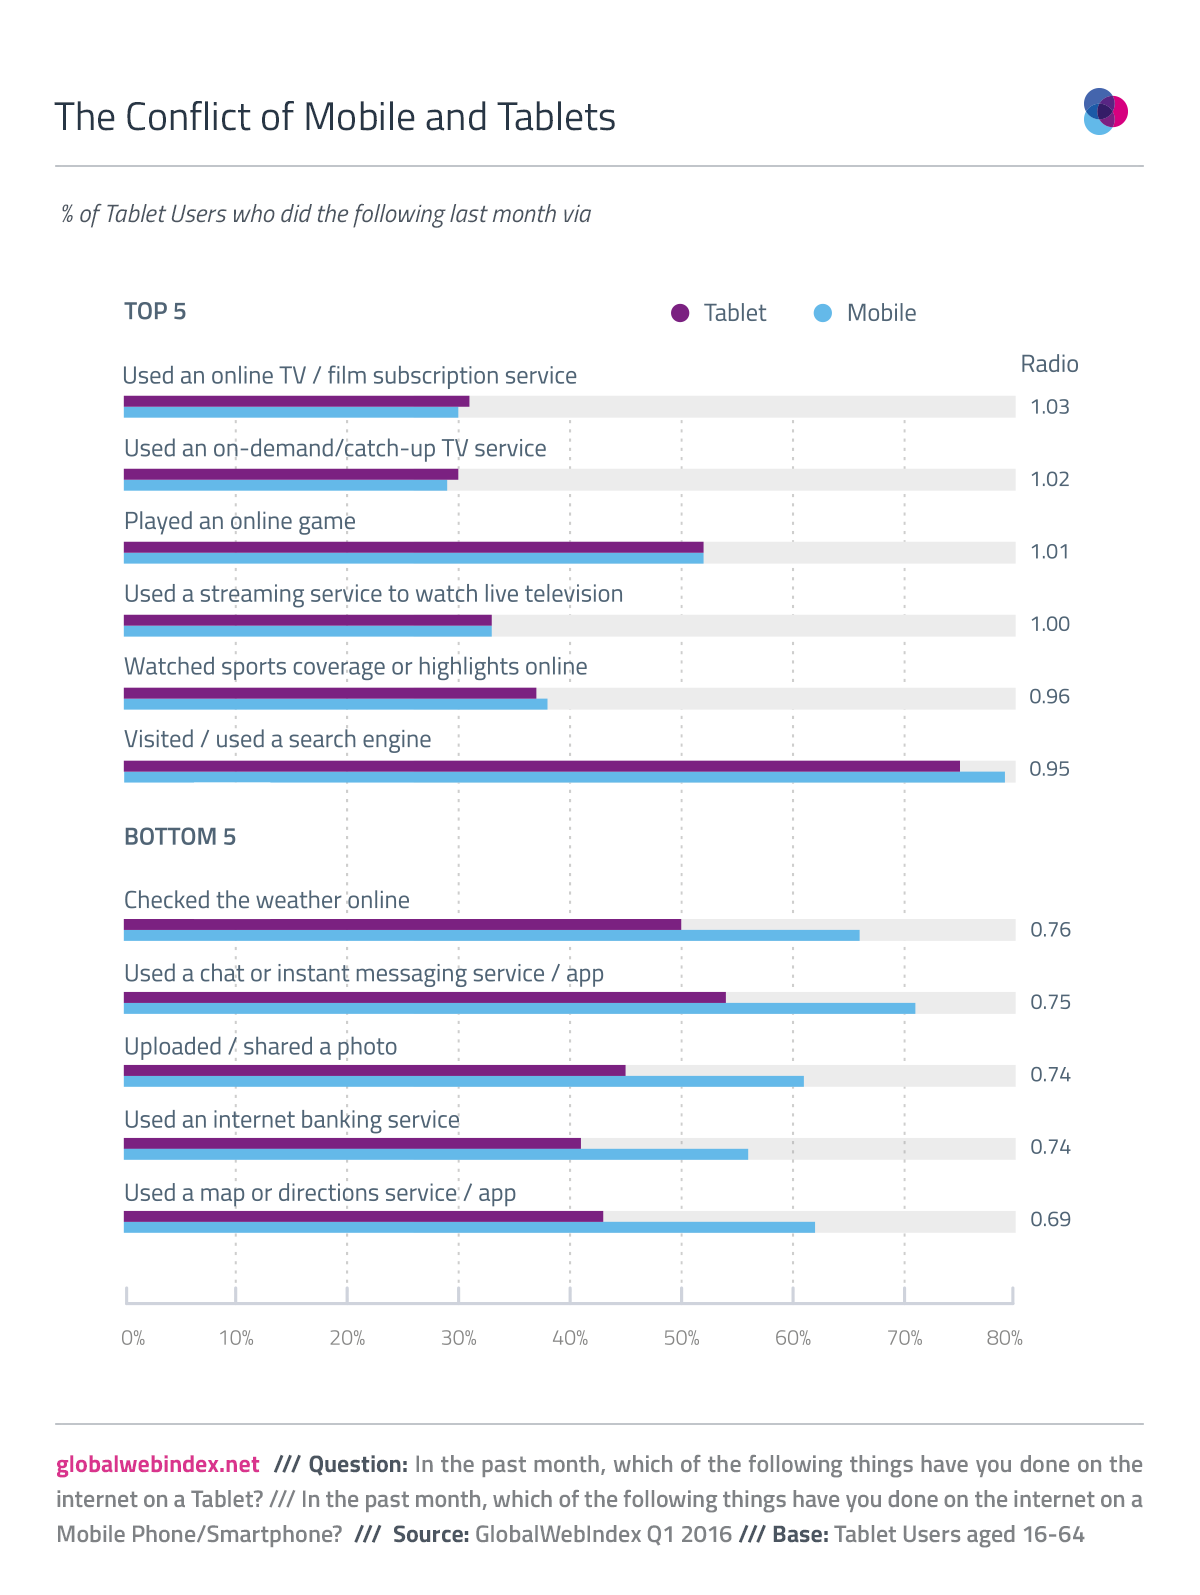 Tablet users more likely to use smartphones for most activities